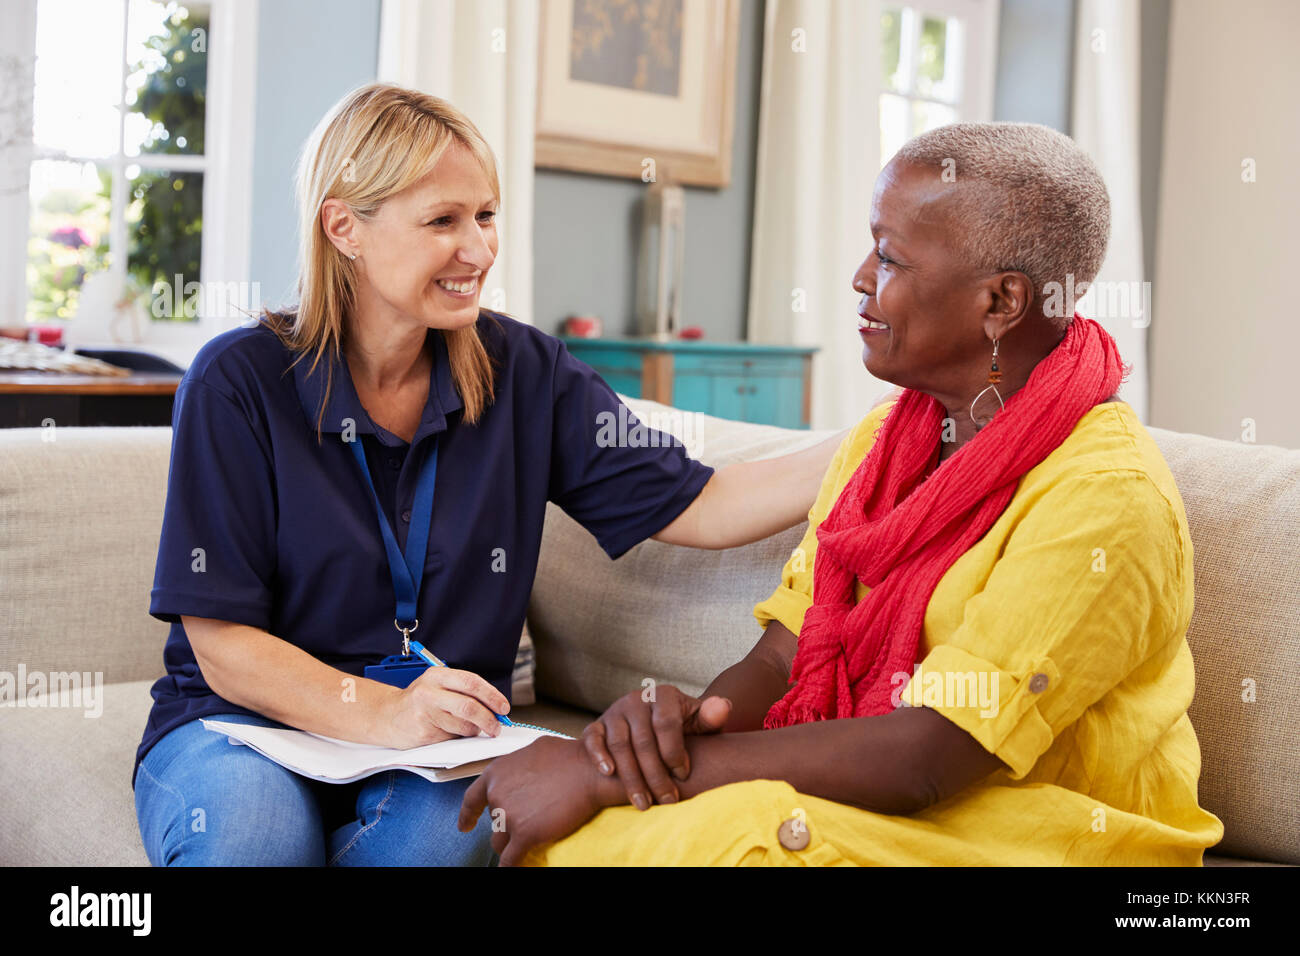 Female Support Worker Visits Senior Woman At Home - Stock Image